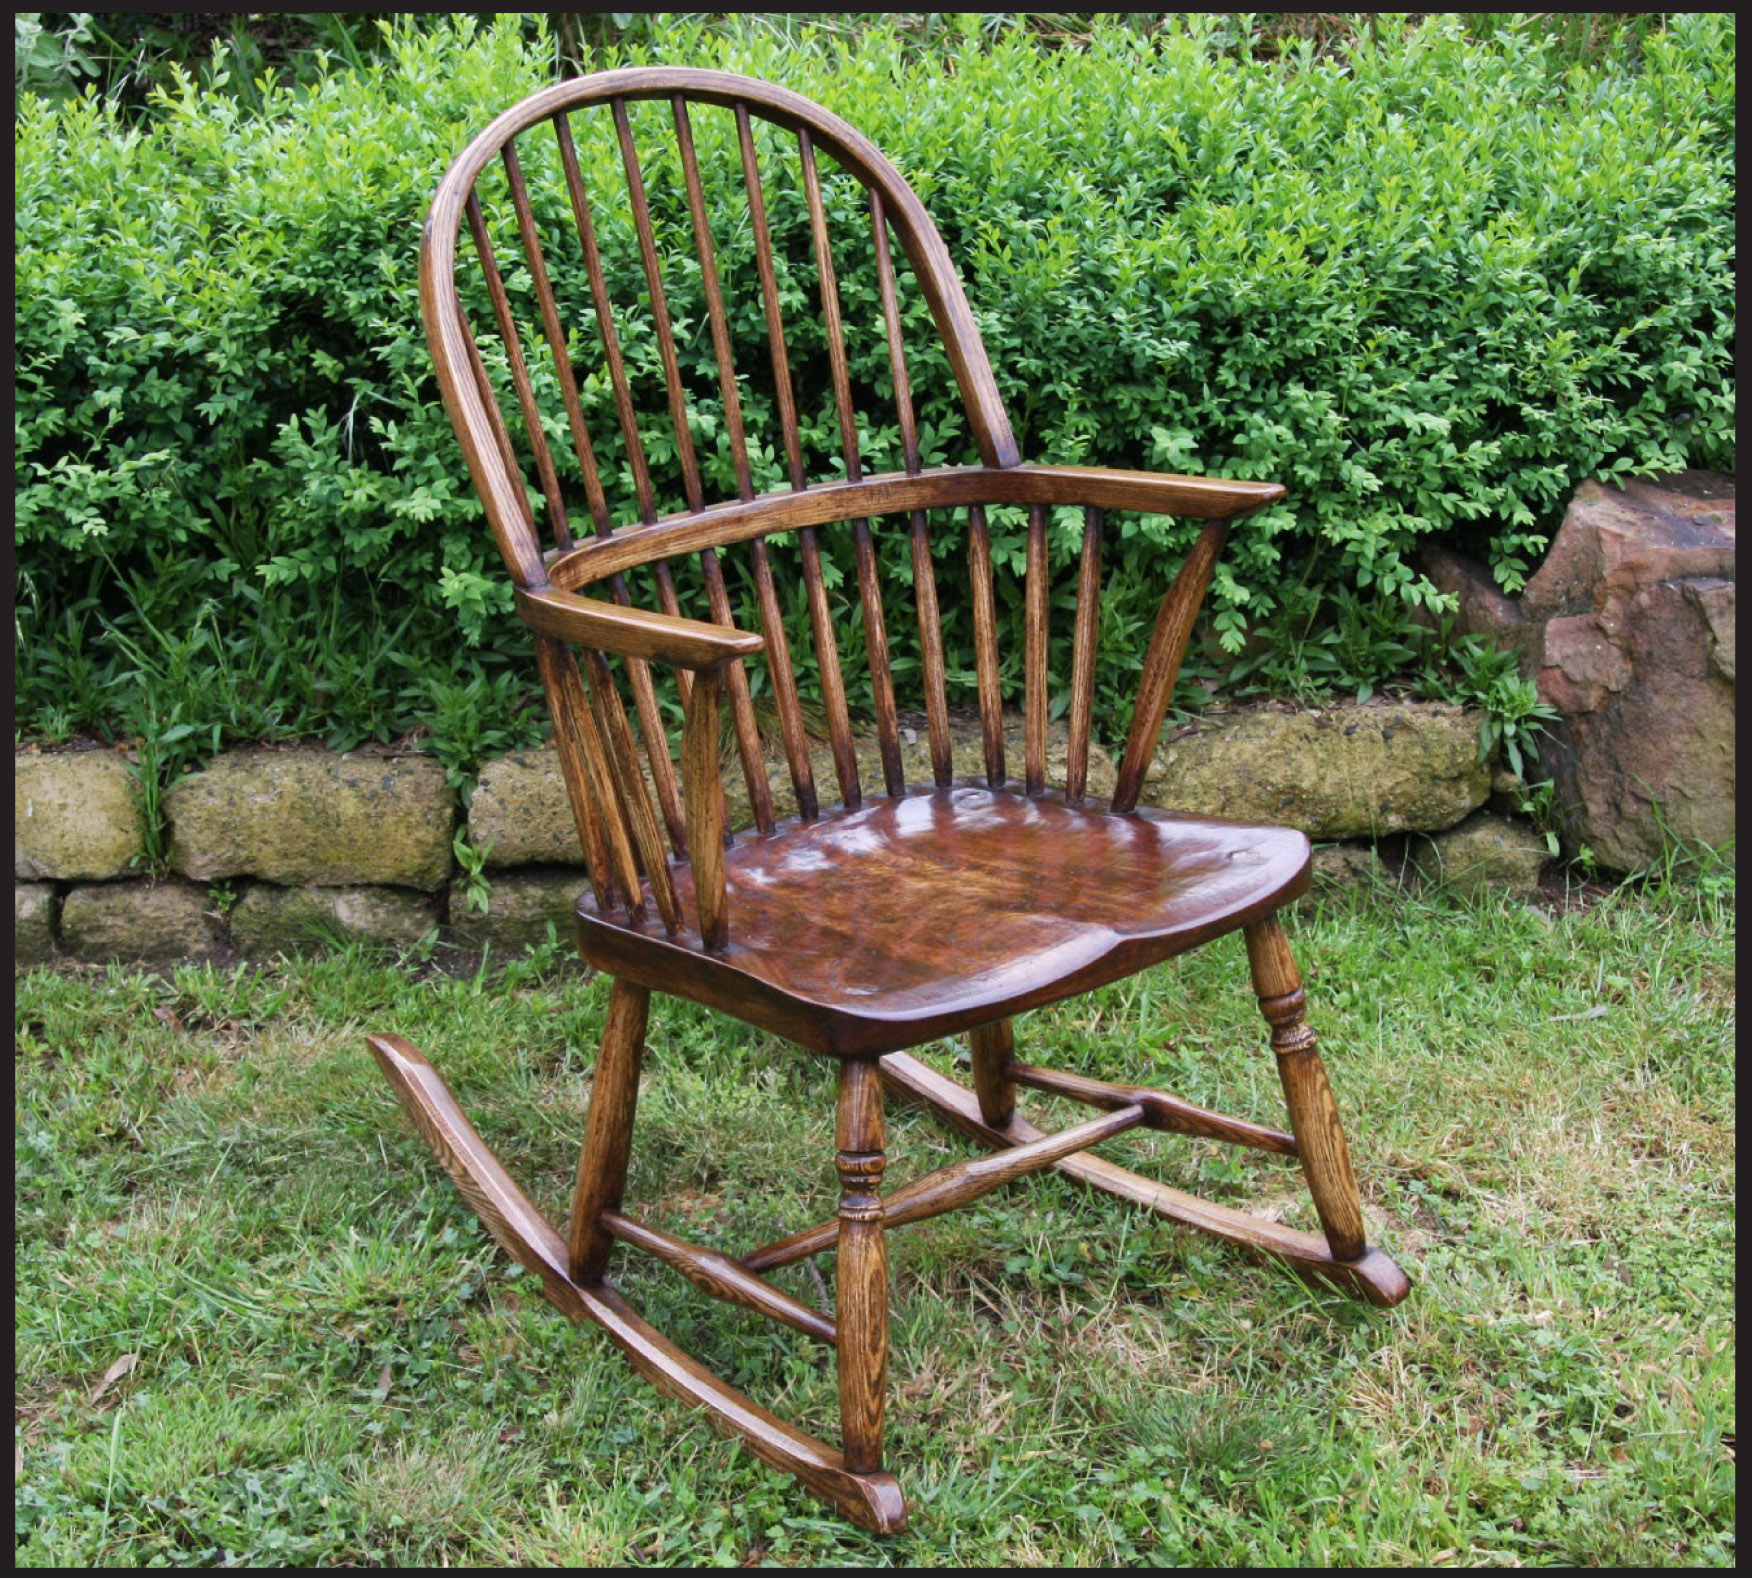 The traditional rocking chair as they should be